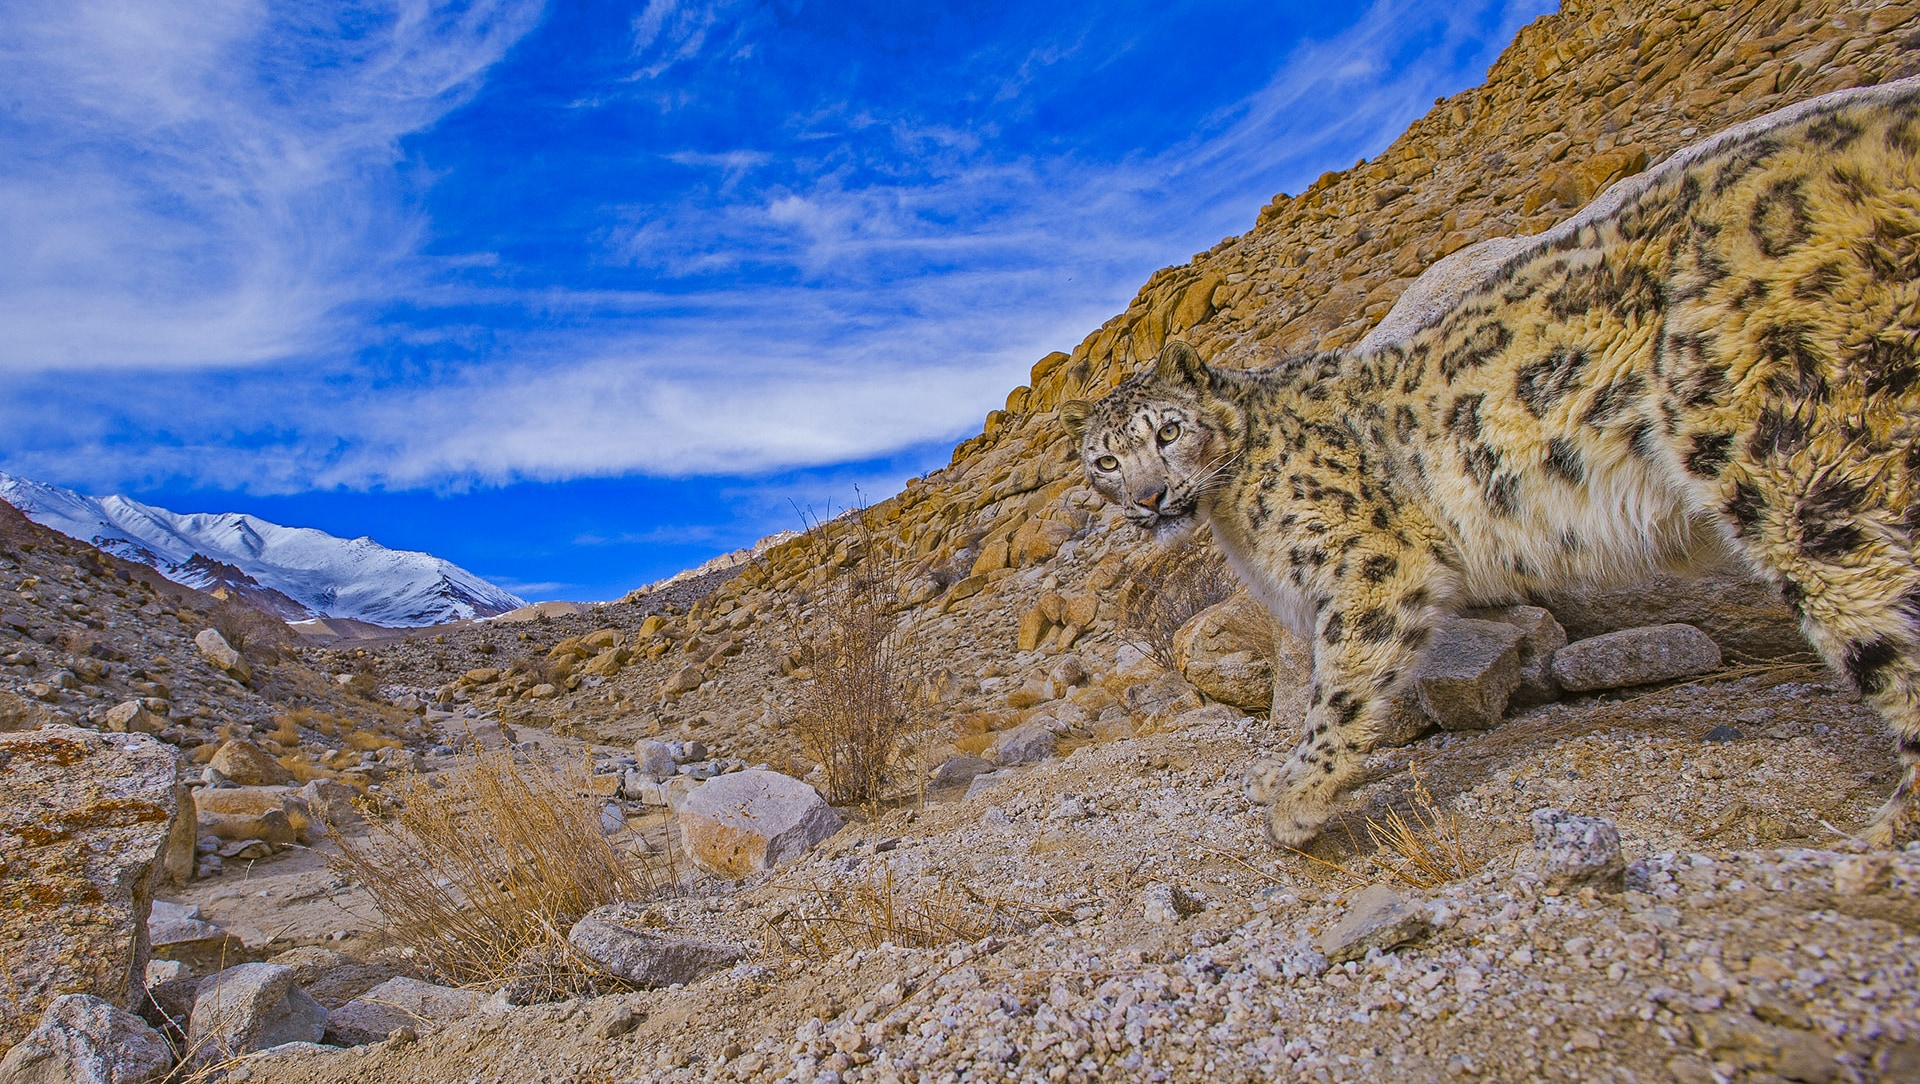 The Big Melt: Snow Leopards and Climate Change